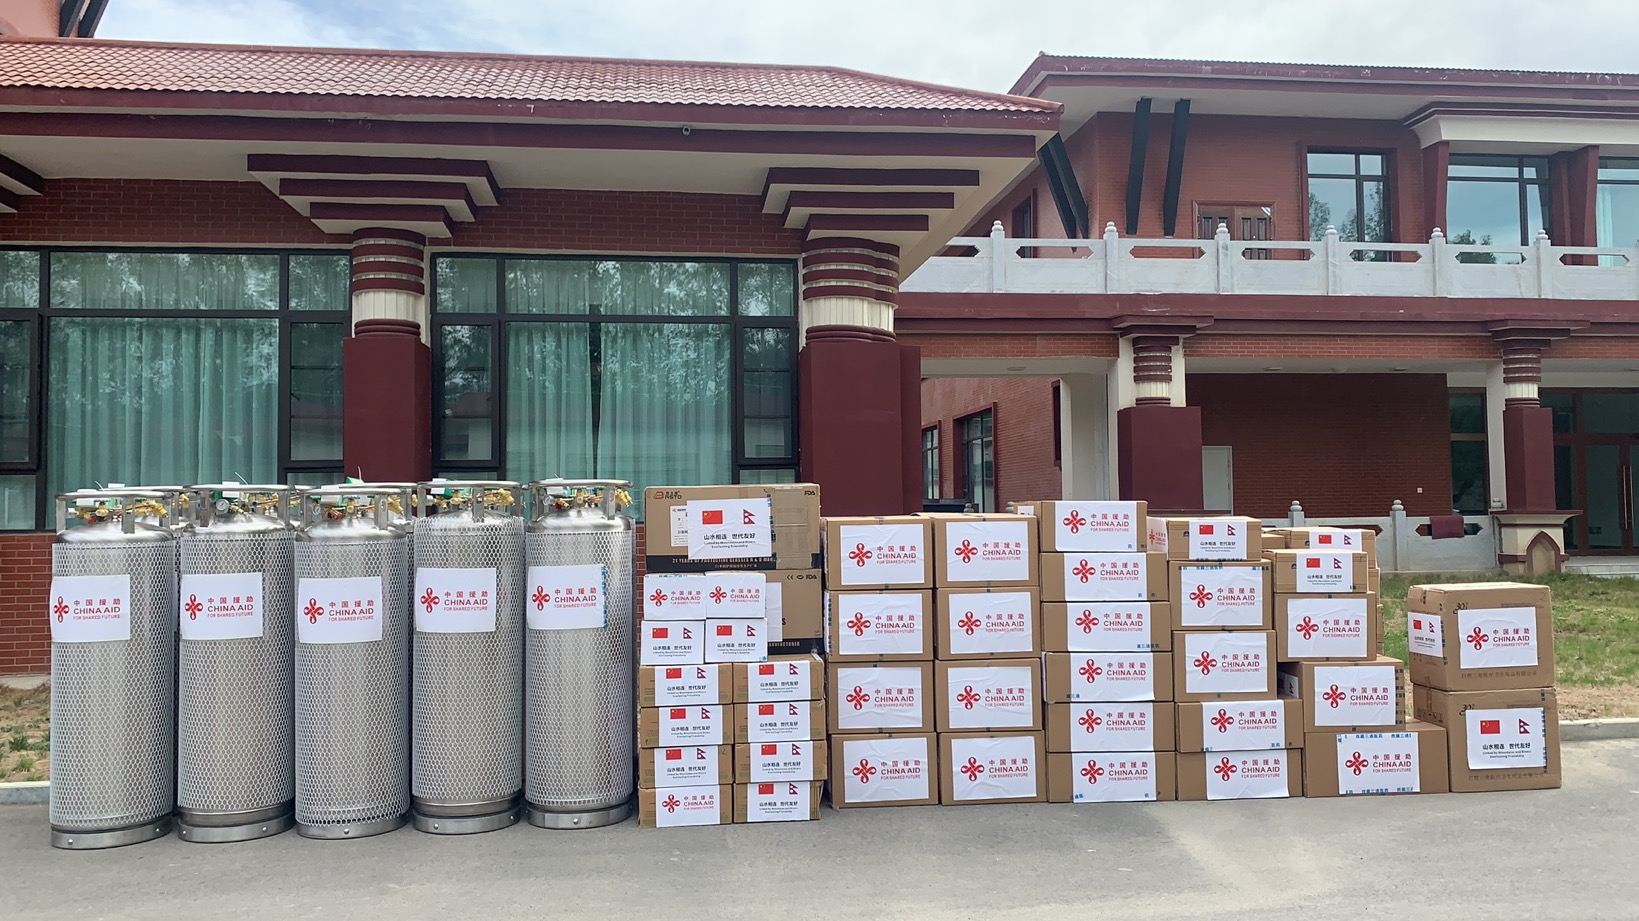 Tibet government provides ICU beds, ventilators and oxygen supplies to Nepal